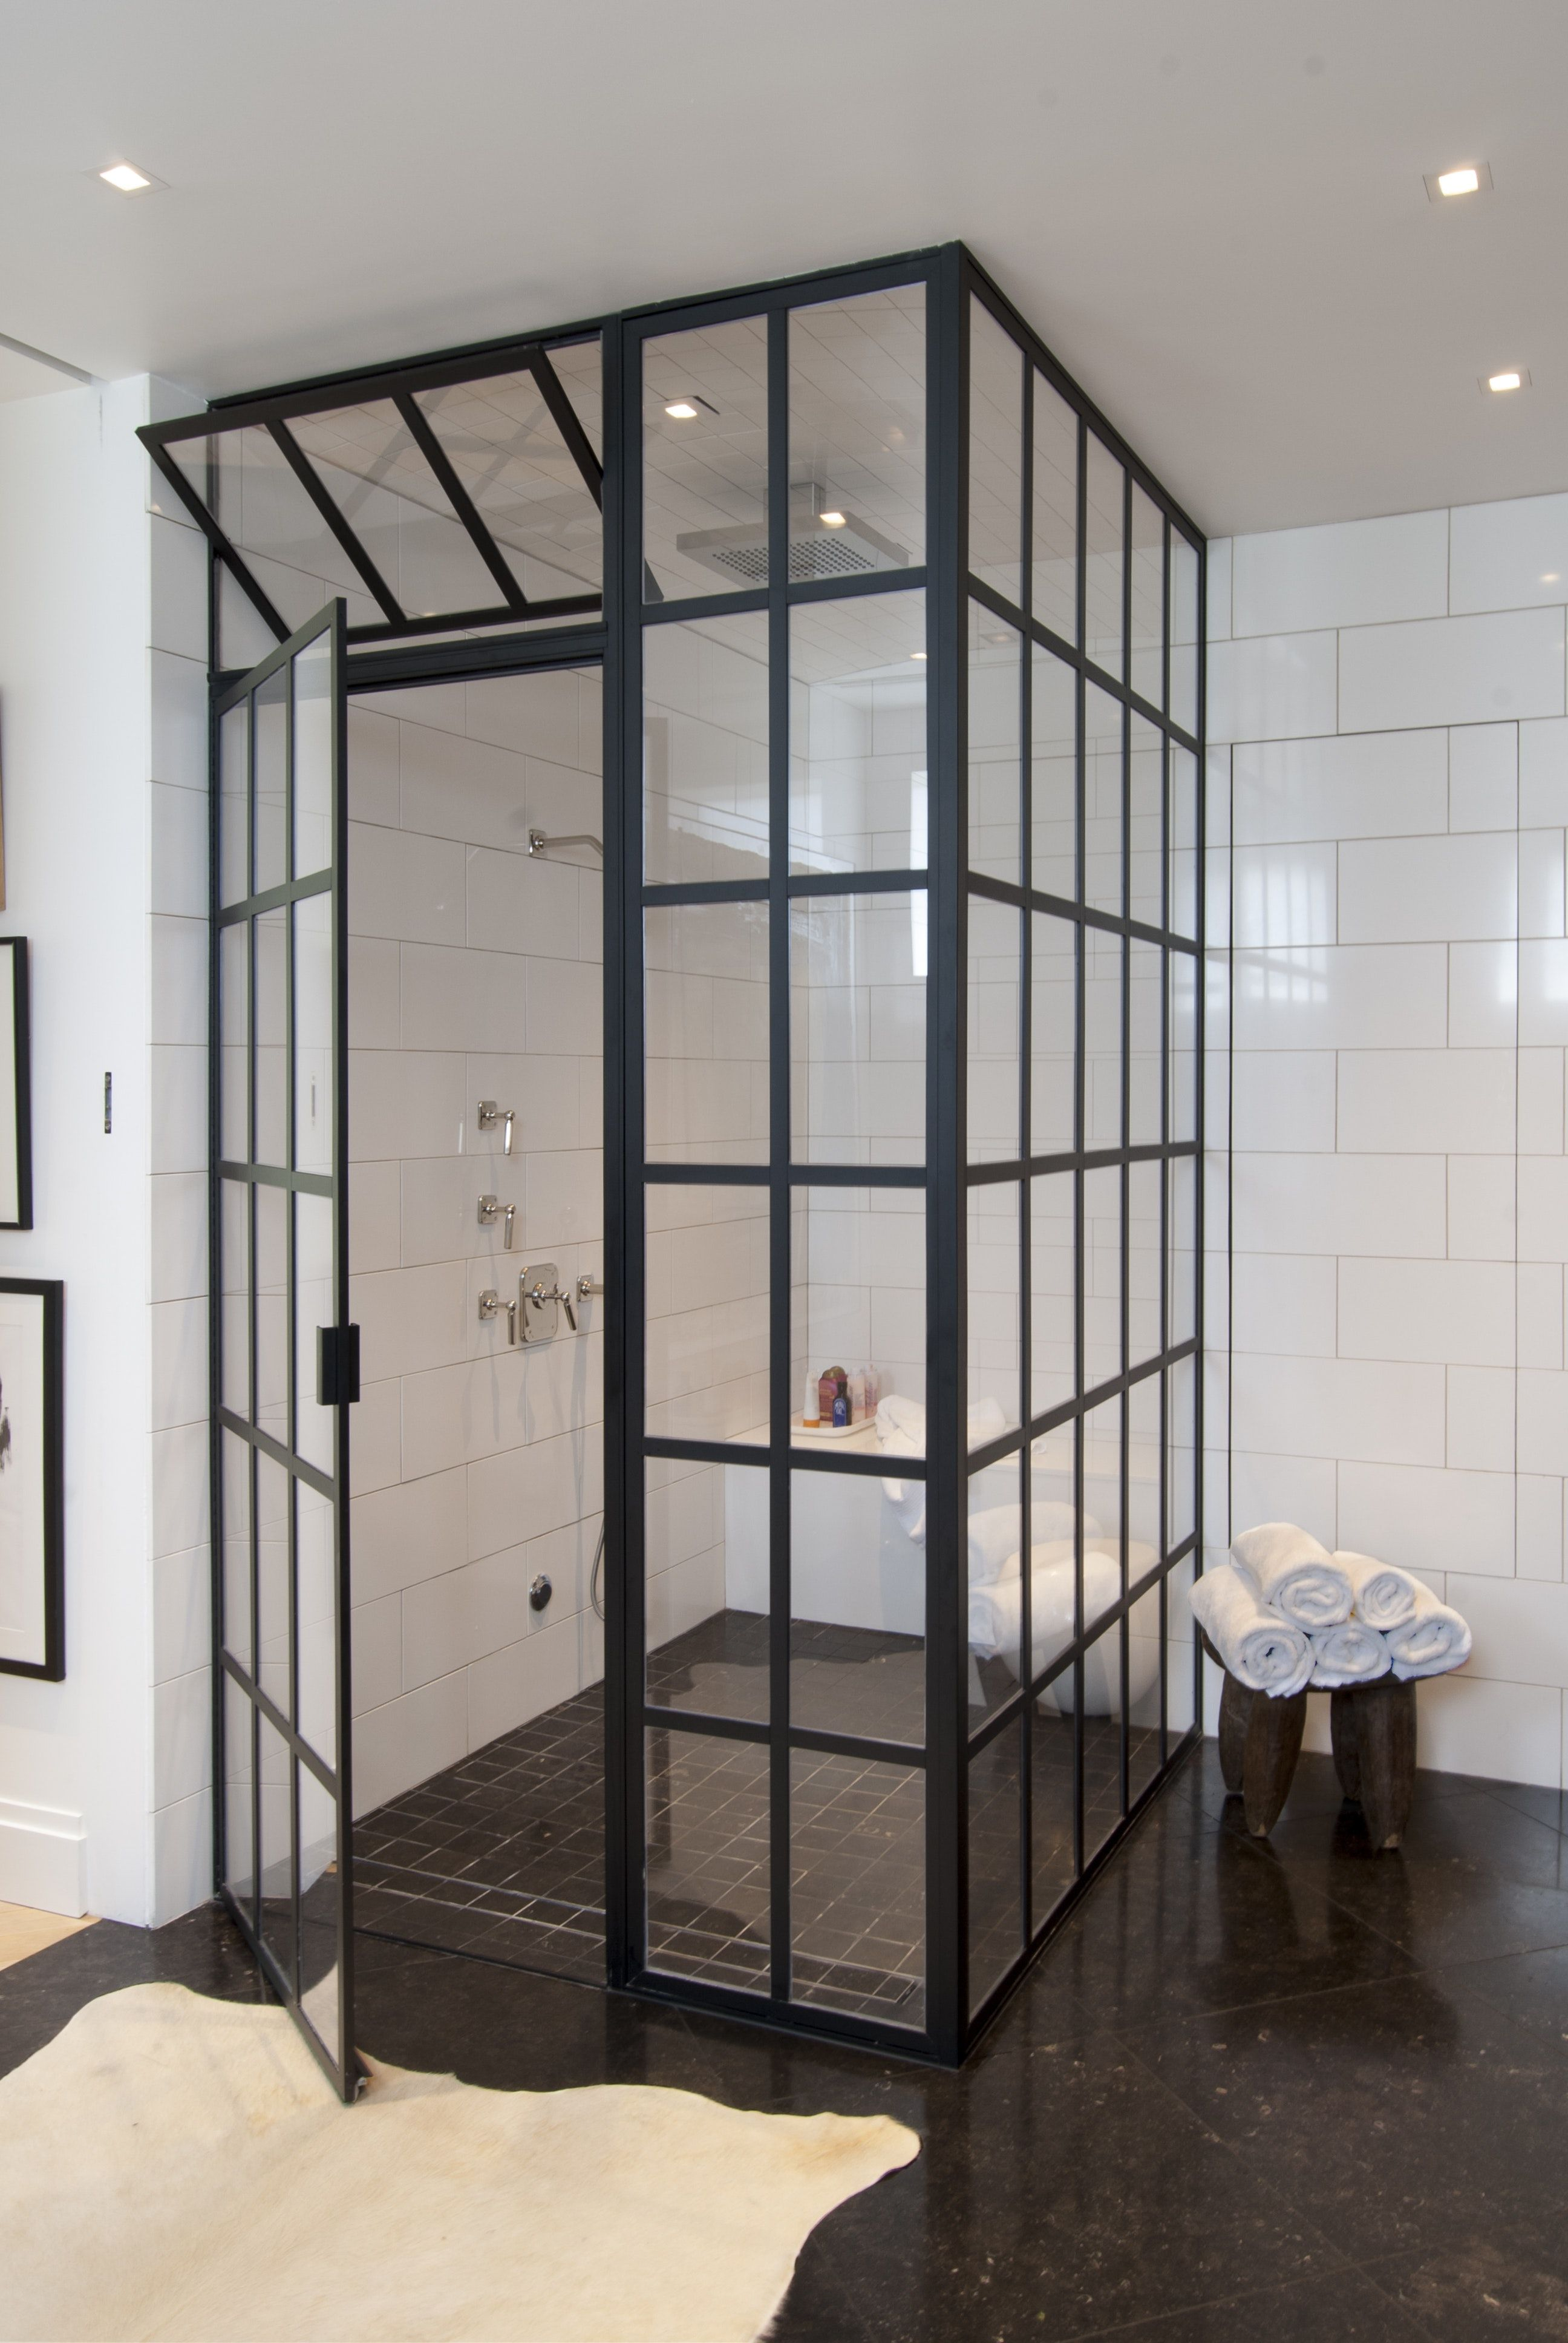 These showers are the next big thing for the bathroom wet rooms